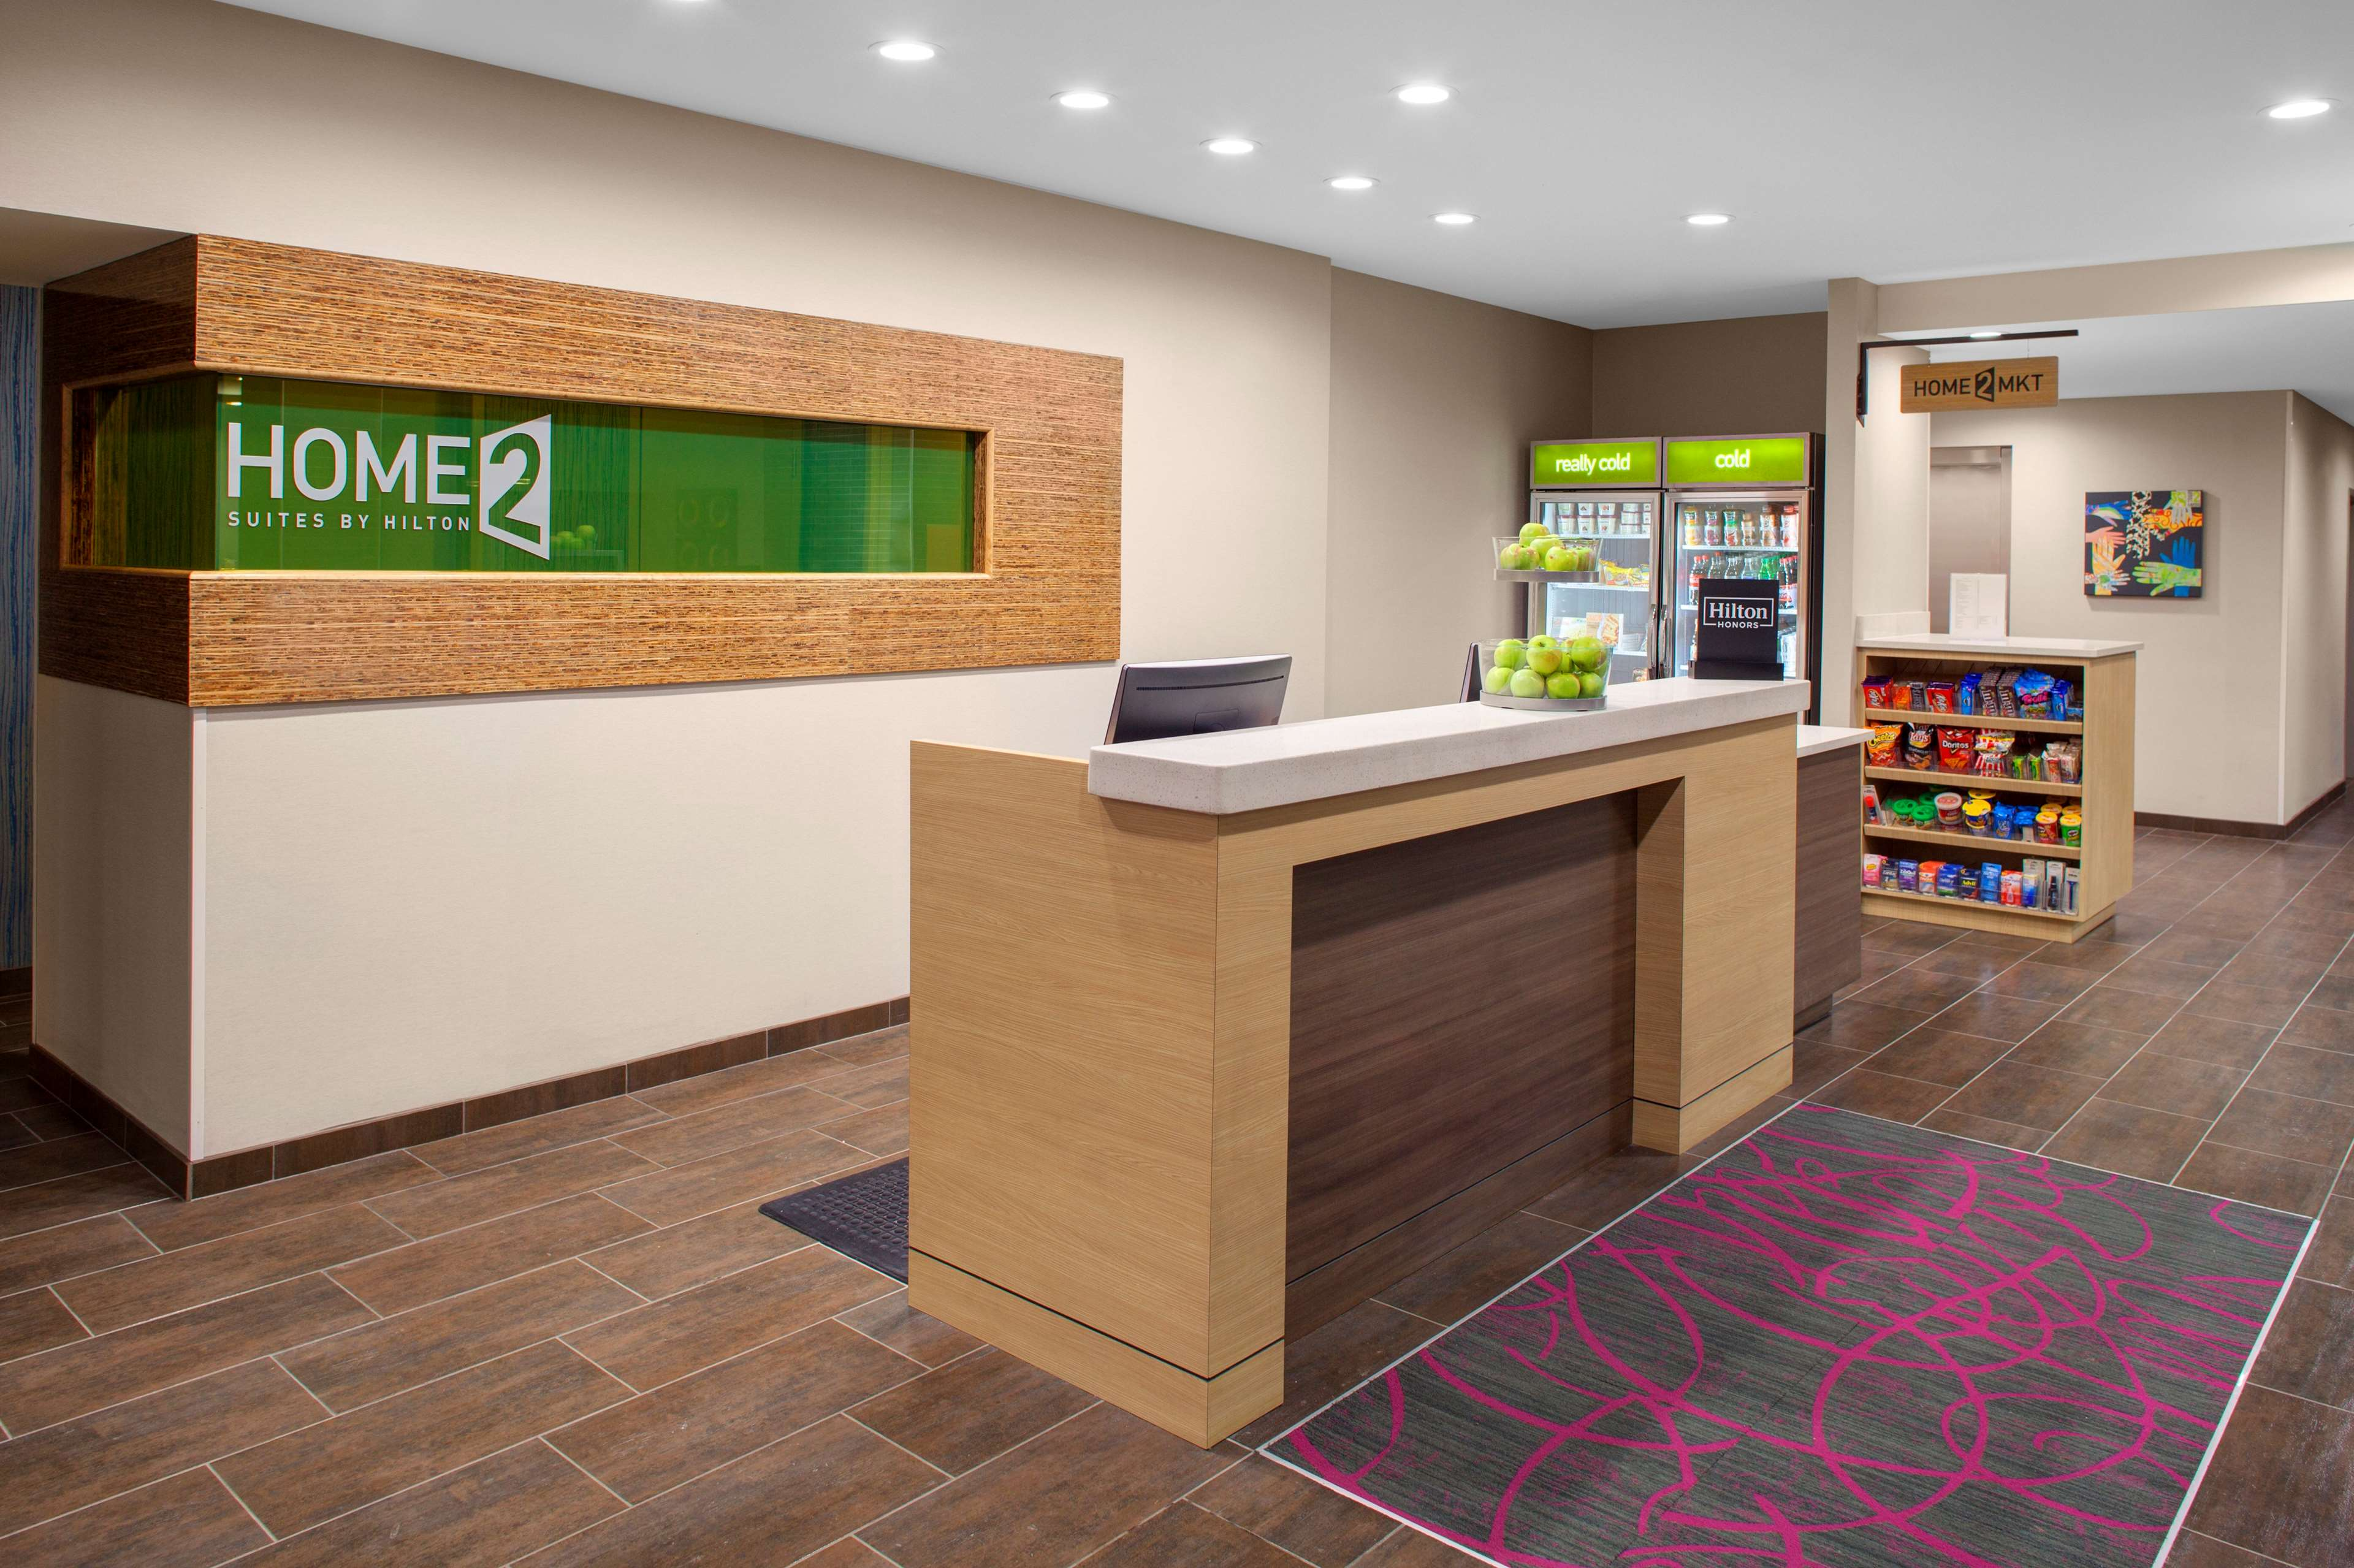 Home2 Suites by Hilton Lake Charles image 4